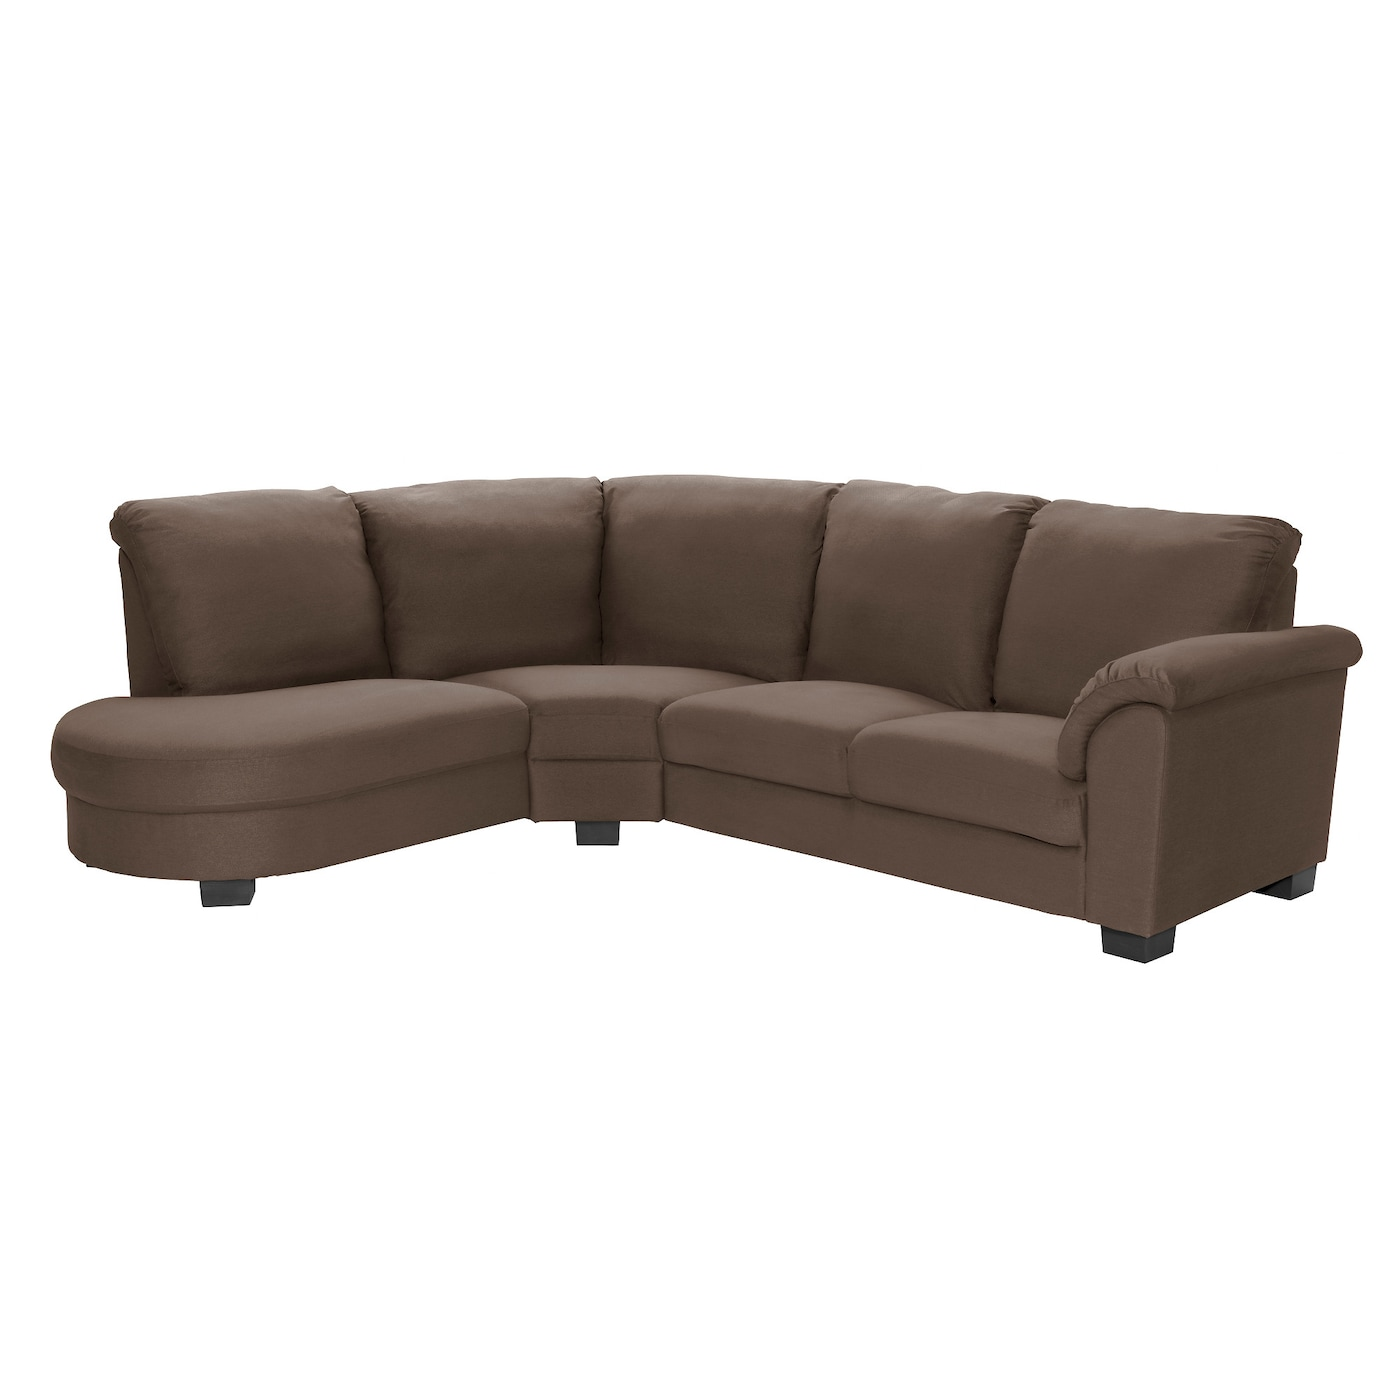 Tidafors corner sofa with arm right dansbo medium brown ikea - Sofas en esquina ...